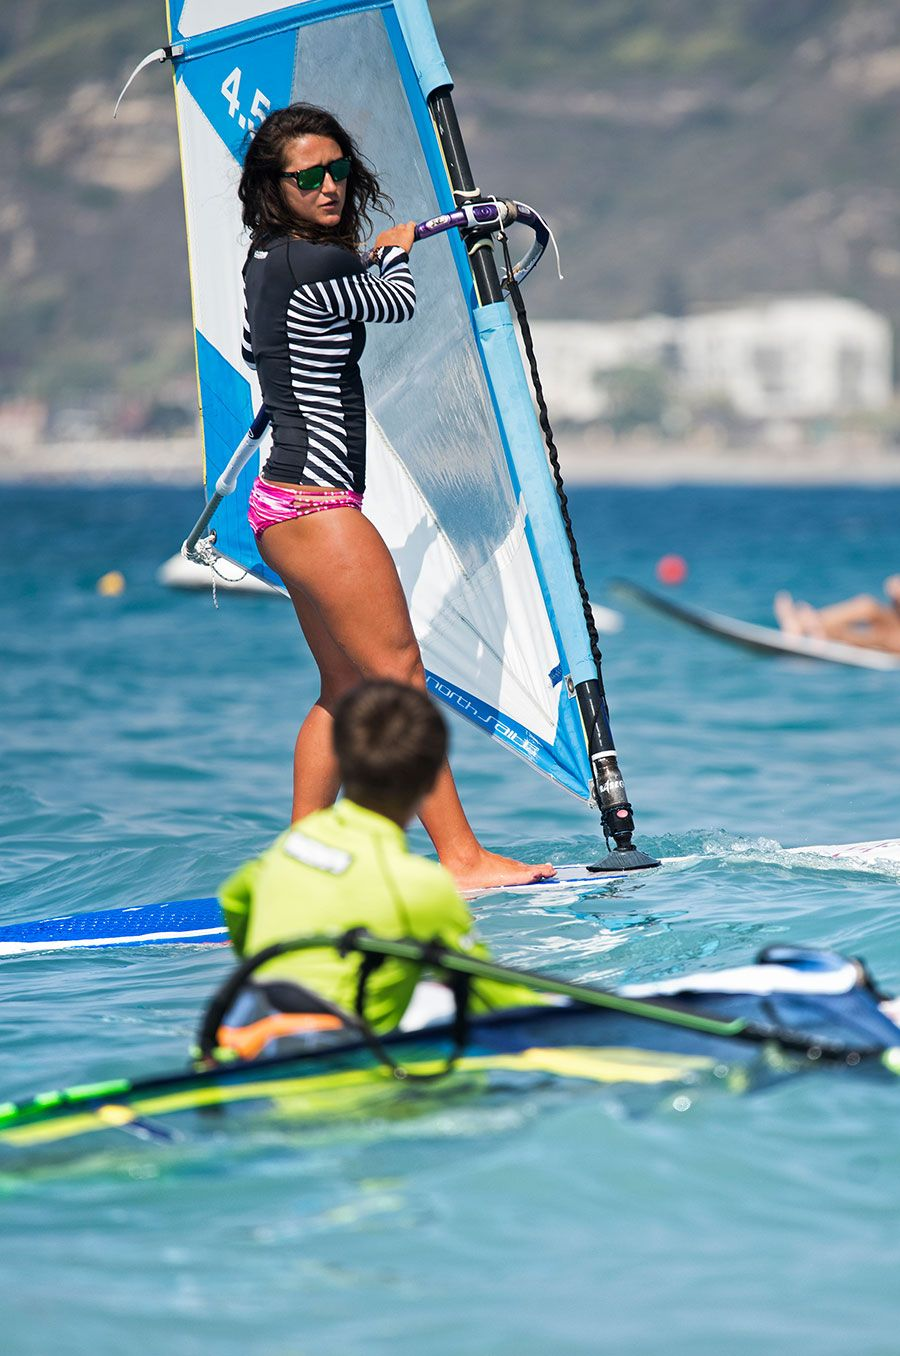 kid-girl-board-sail-windsurfersworld-windsurfing-ixia